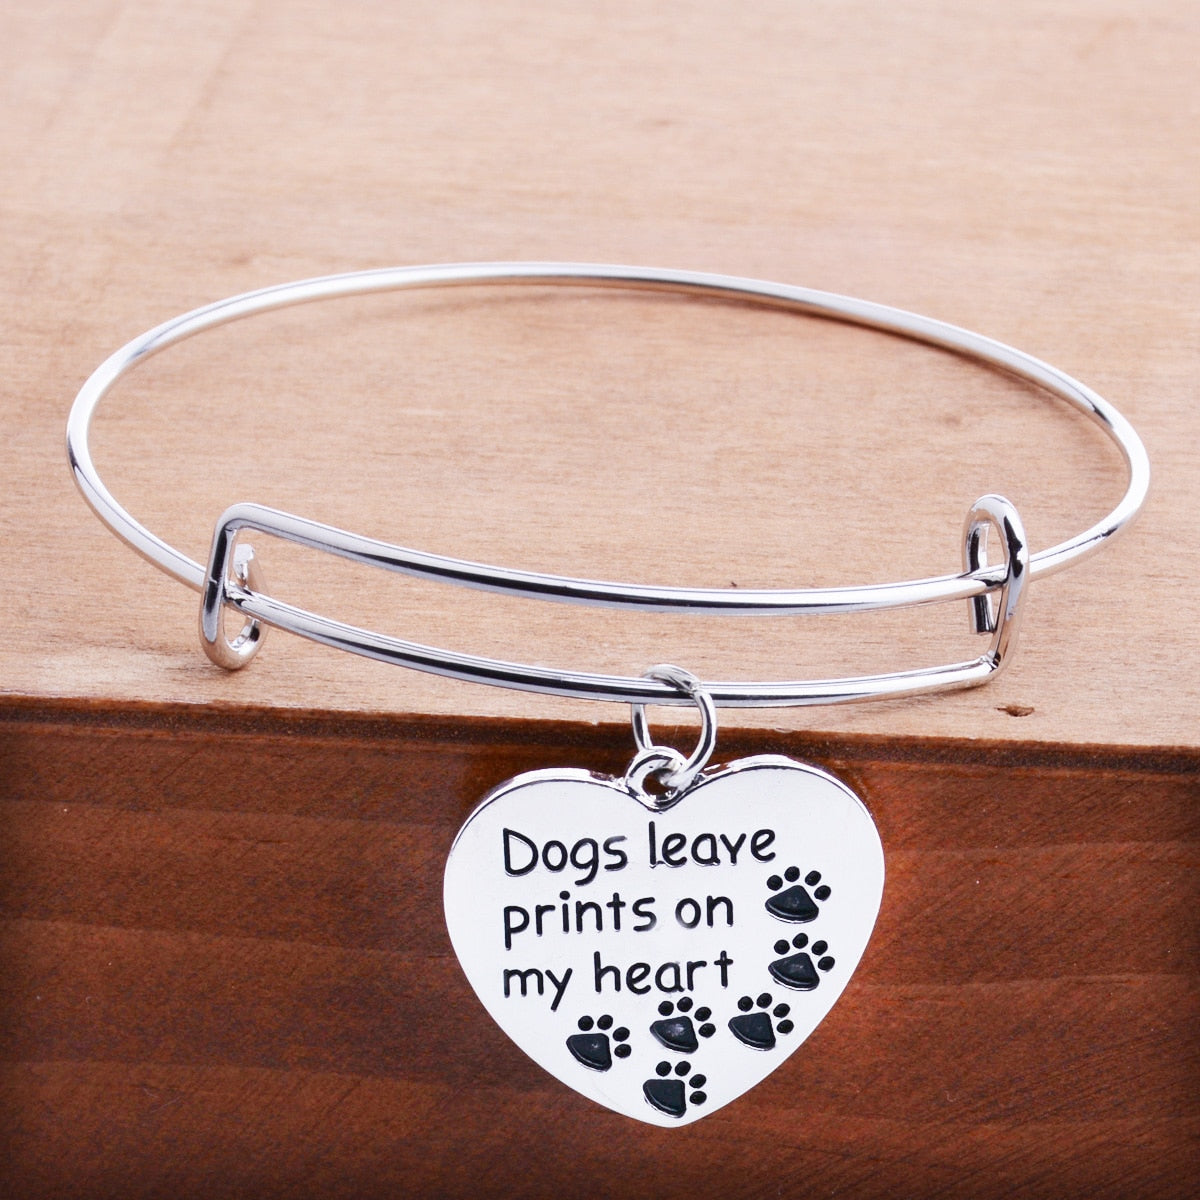 Women's Heart Charm Bangle Bracelet - ''Dogs Leave Prints On My Heart''